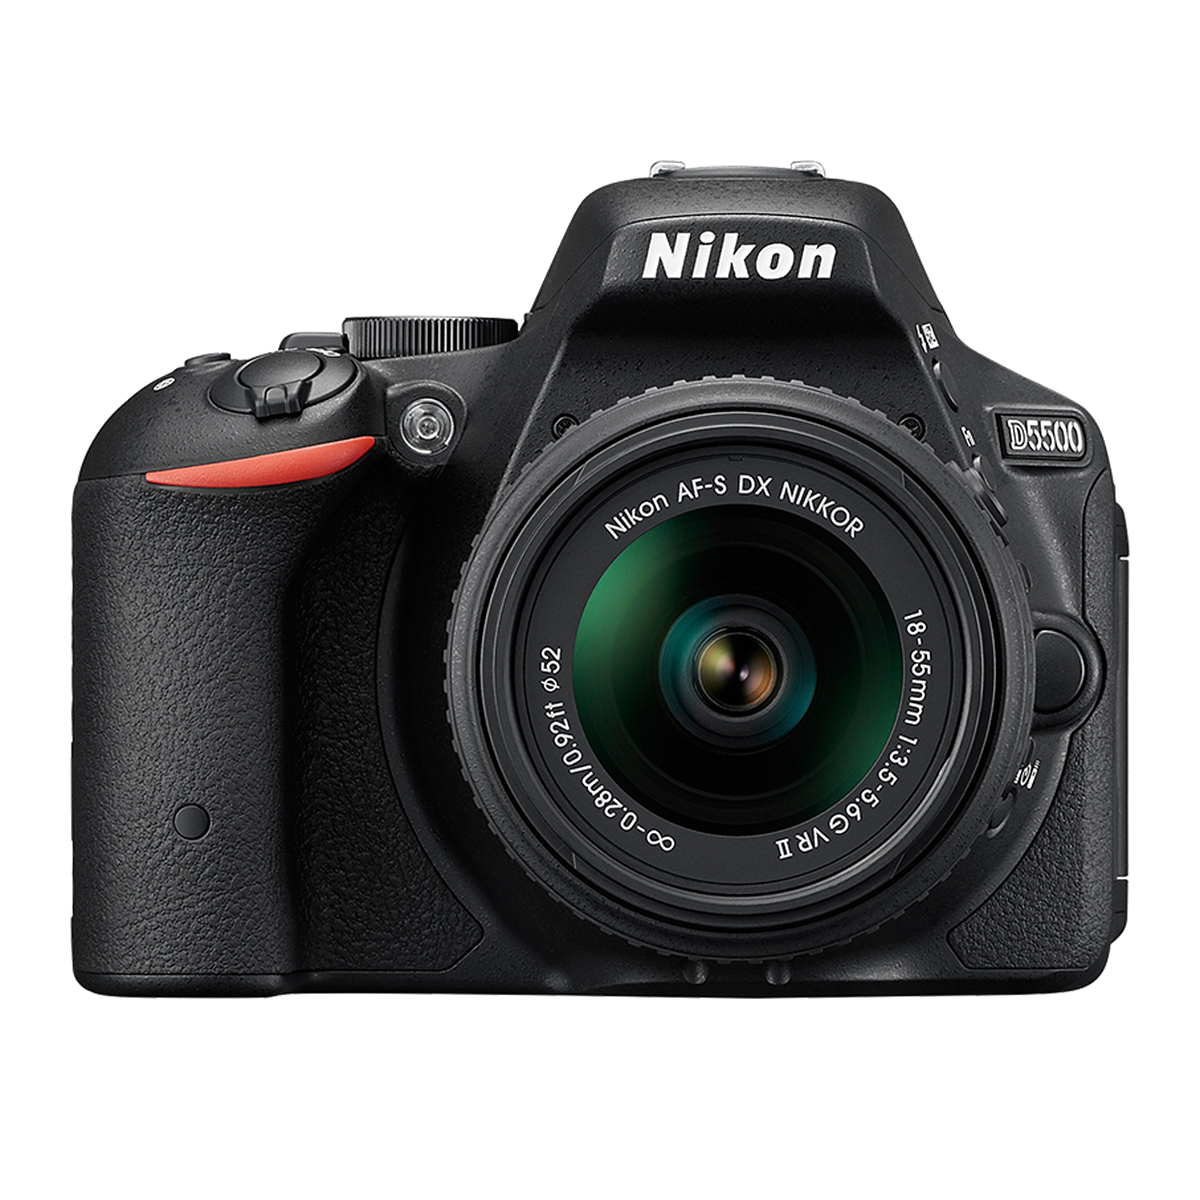 Nikon D5500 Adds Touchscreen And Flat Picture Profile Loses Gps Digital Photography Review